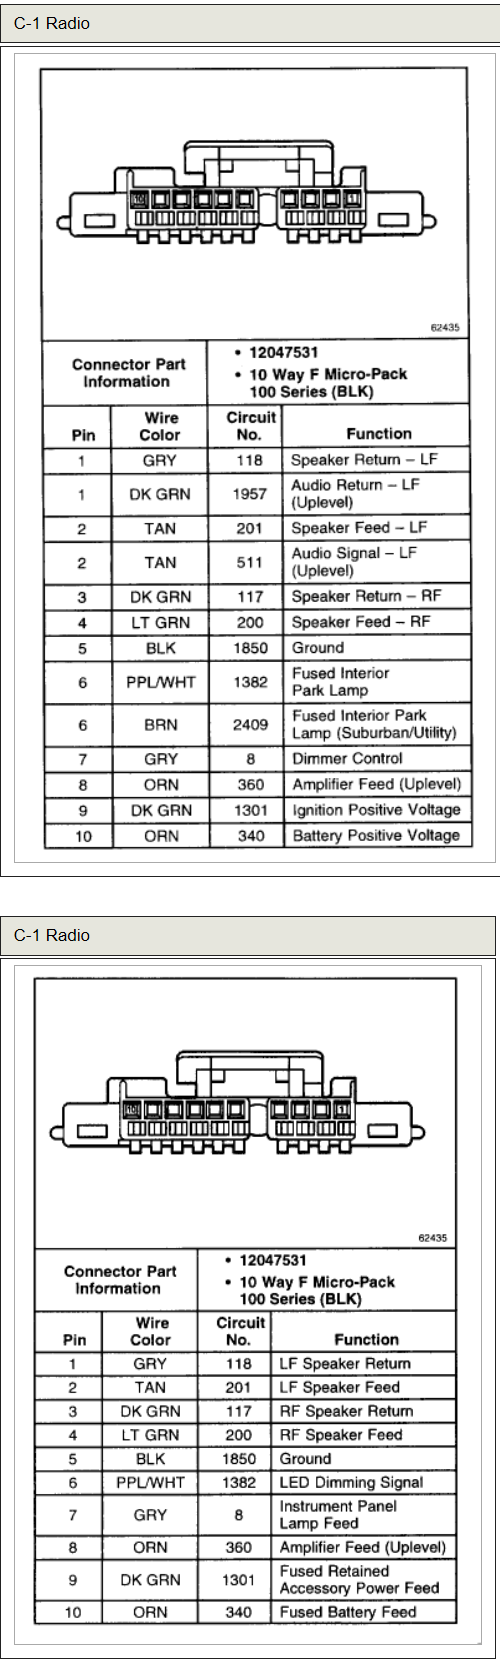 Chevrolet Car Radio Stereo Audio Wiring Diagram Autoradio Connector M Speaker Wire Installation Schematic Schema Esquema De Conexiones Anschlusskammern Konektor